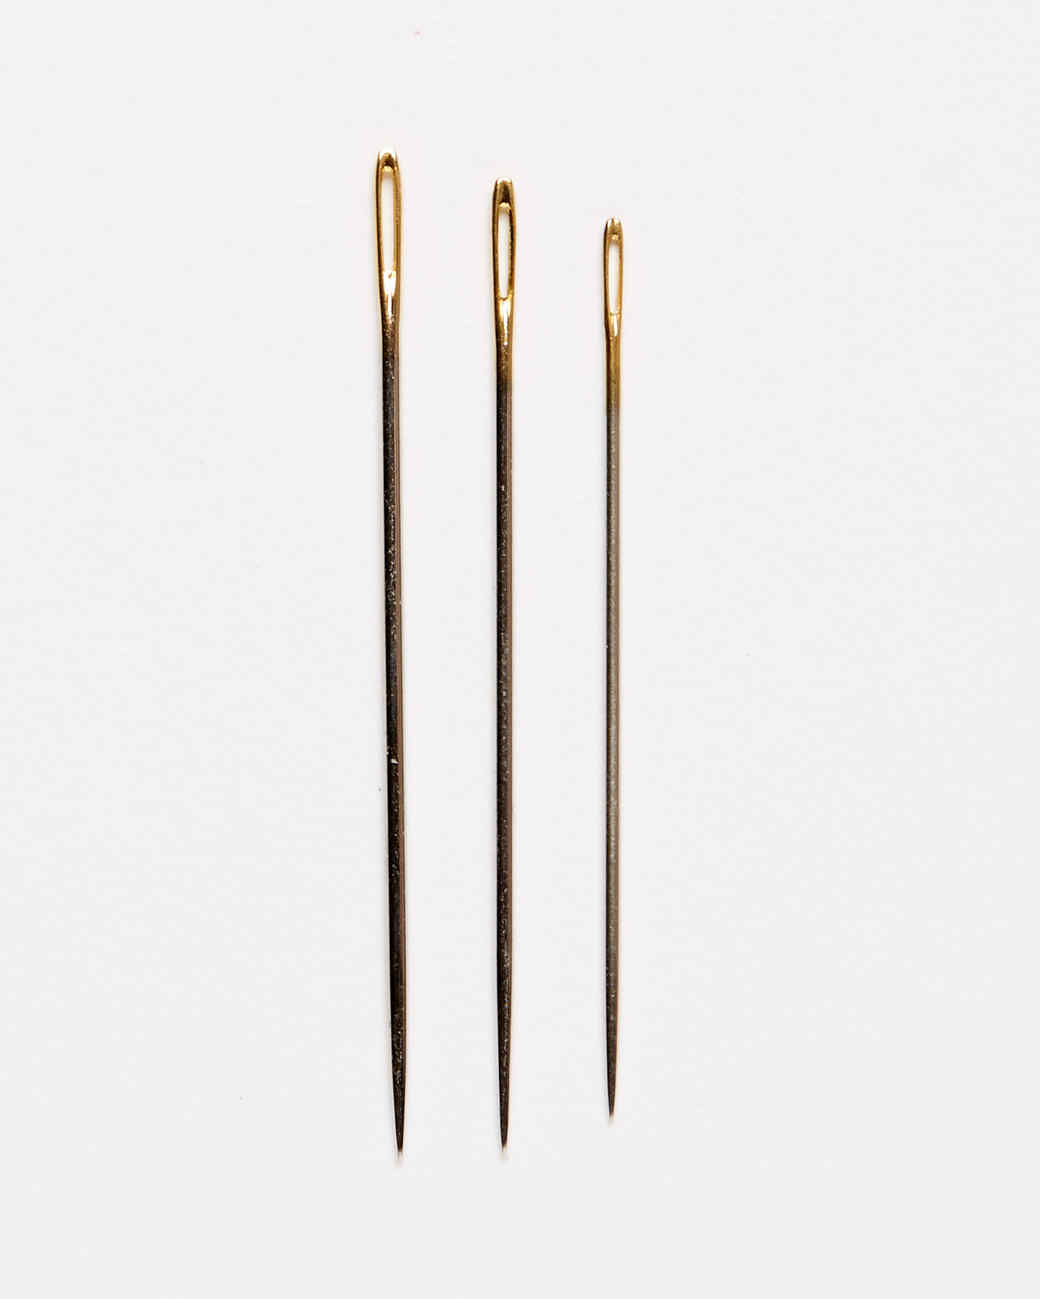 three embroidery quilting needles against a white background